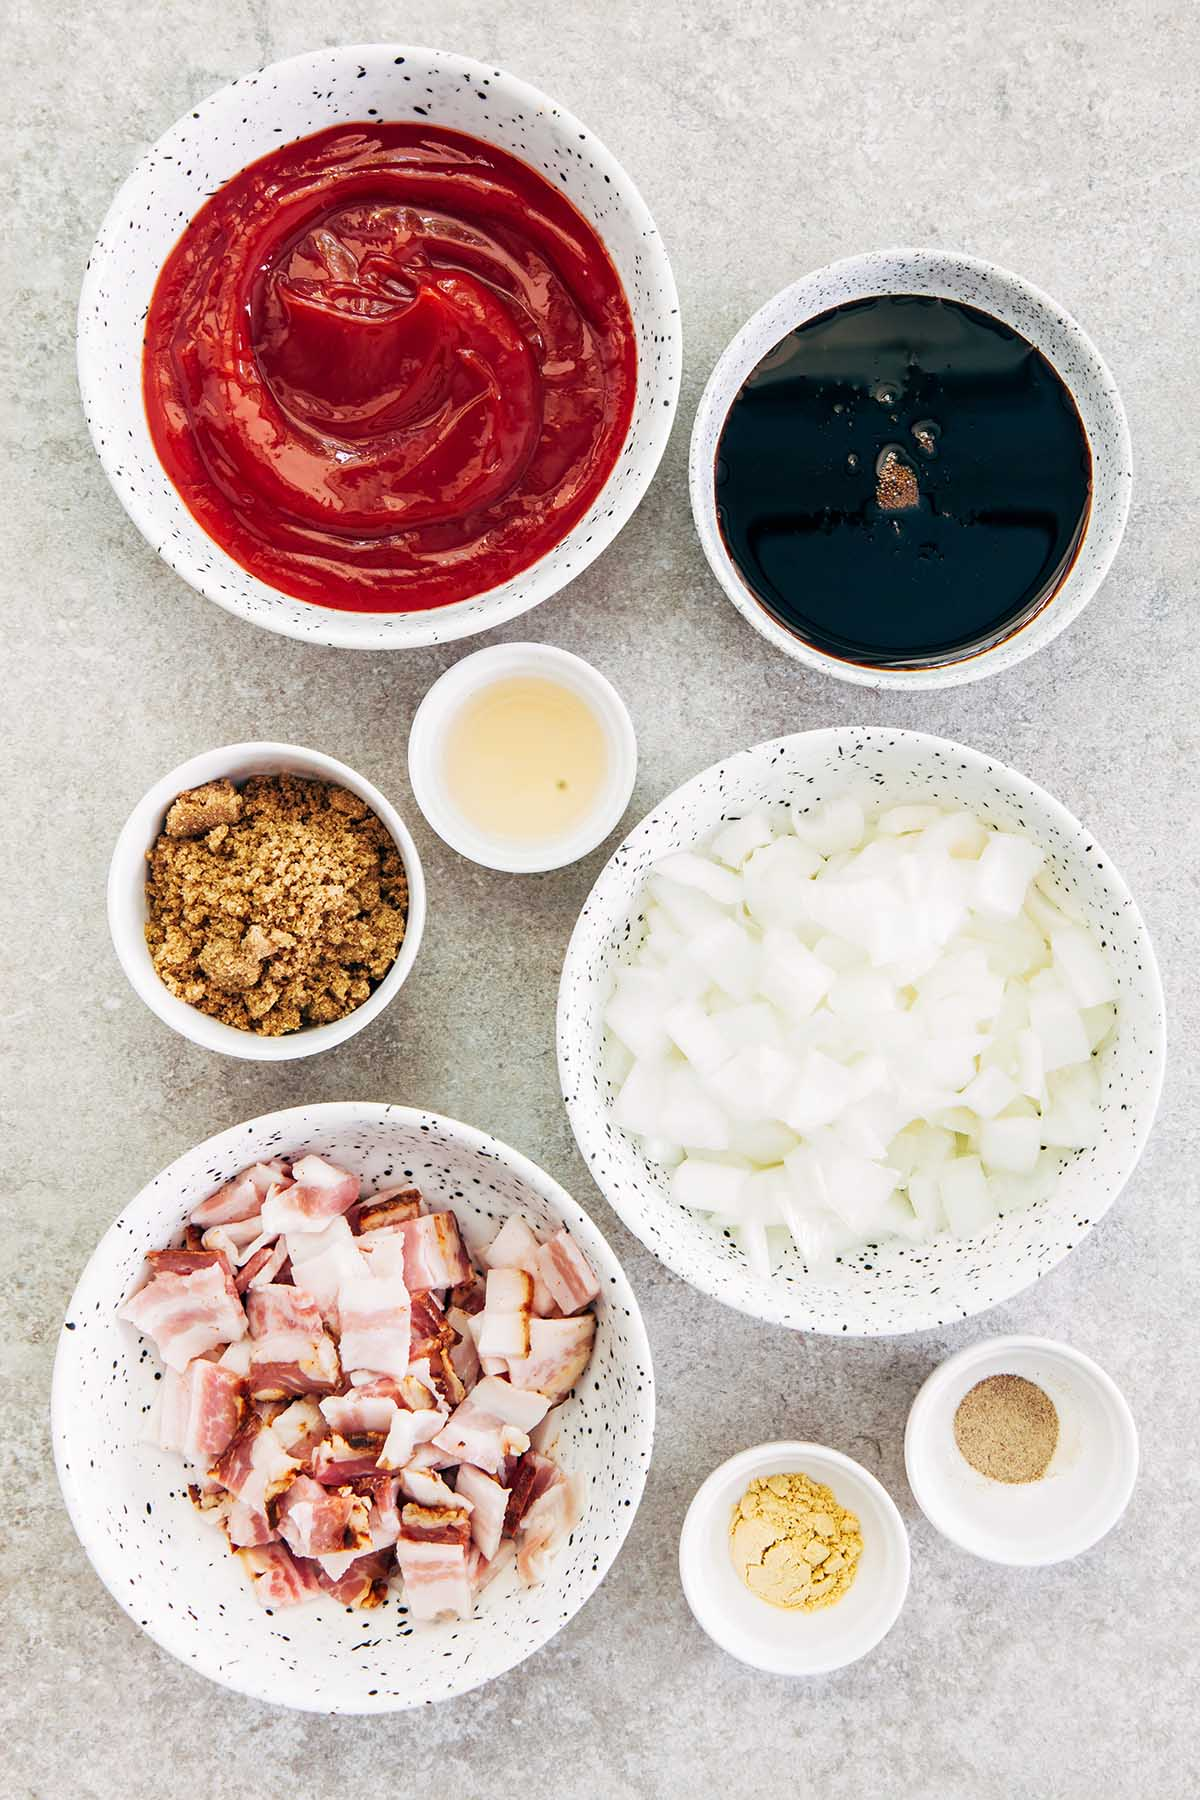 Bowls of ketchup, molasses, apple cider vinegar, brown sugar, chopped onion and bacon, ground mustard, and ground pepper on a stone surface.